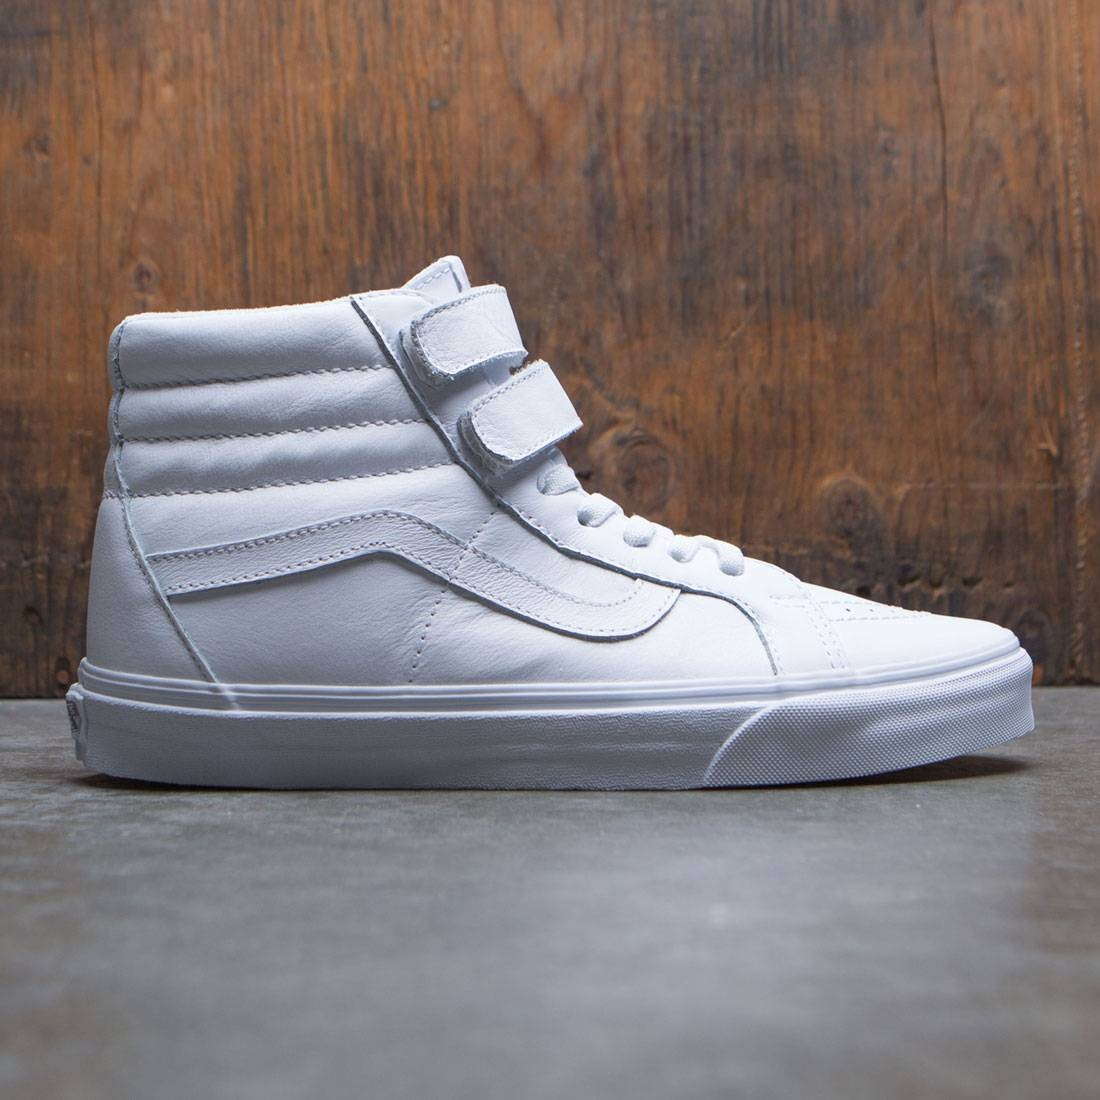 Vans Men SK8-Hi Reissue V - Mono Leather white true white 78f5e0d2c